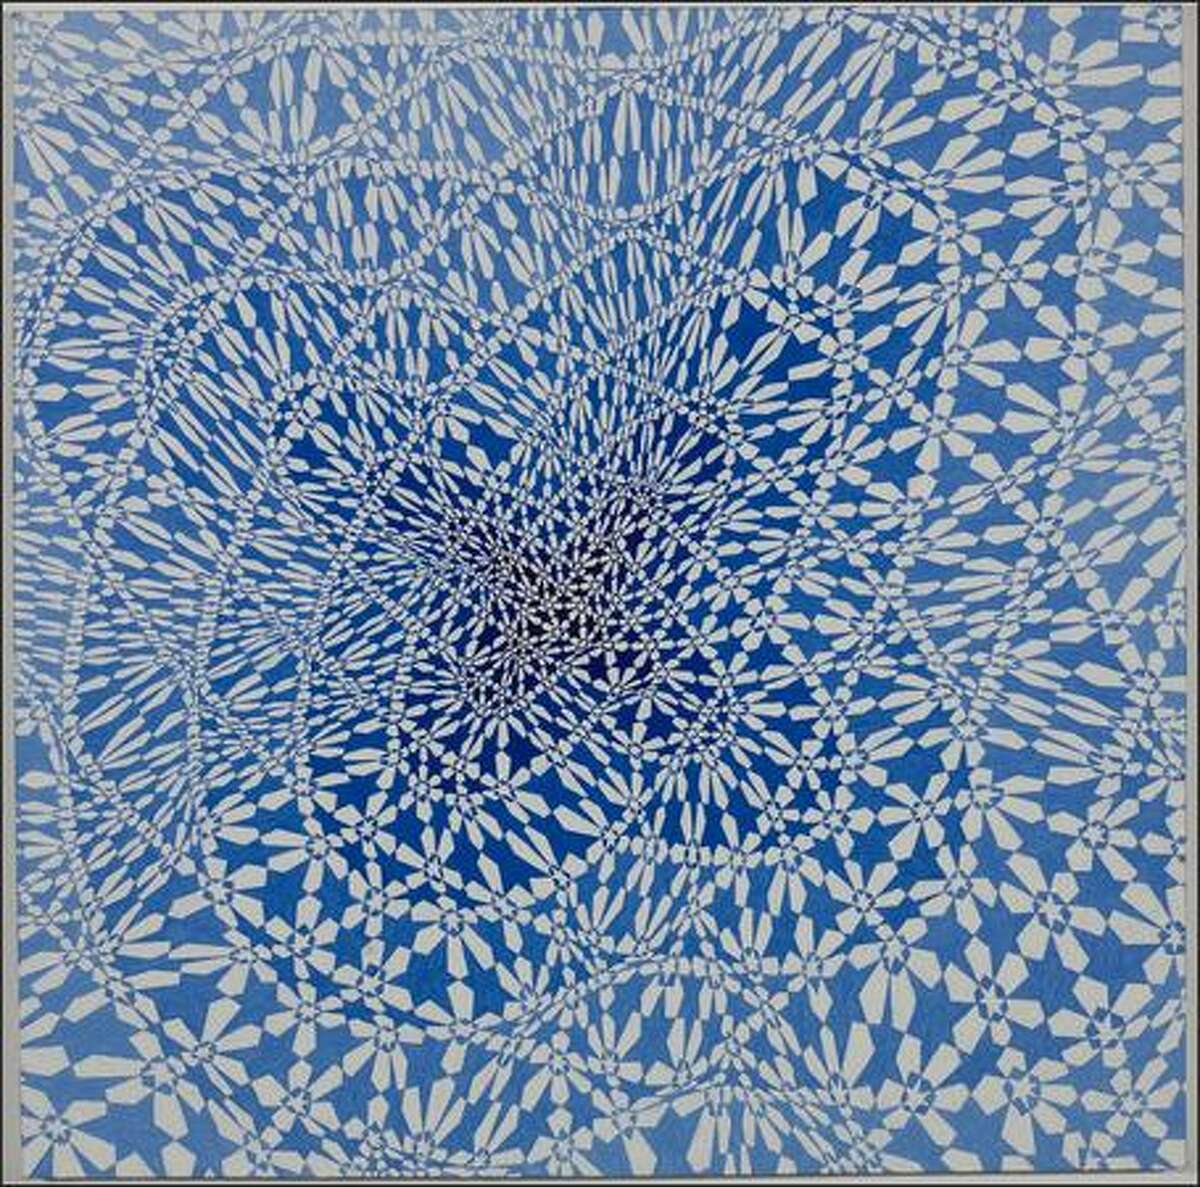 """Michael Knutson's """"Crossing Oval Coils VII"""" oil painting is on view at Greg Kucera Gallery."""